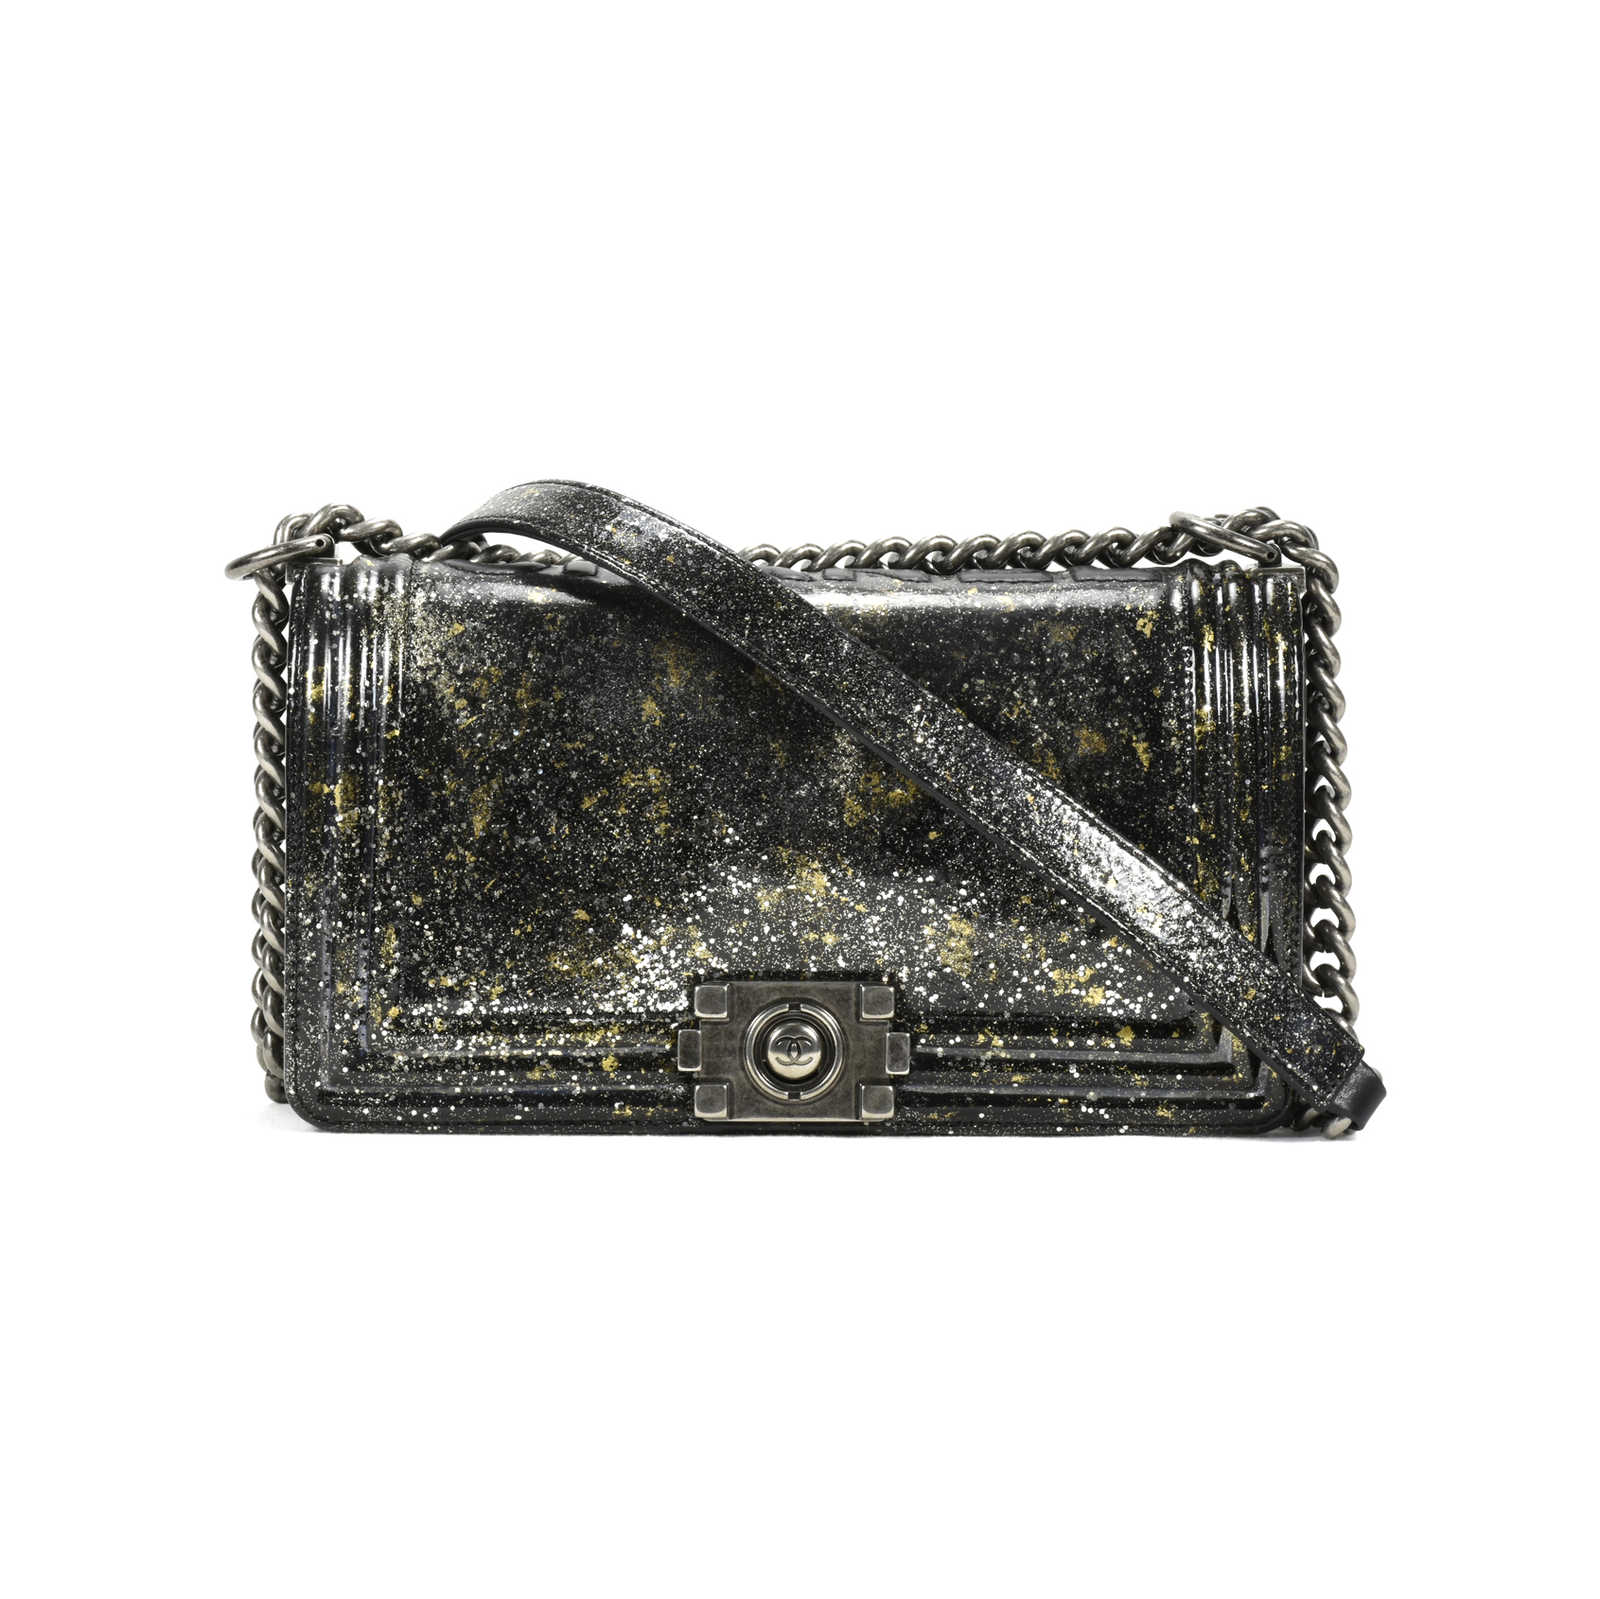 e754feabeb63 Authentic Second Hand Chanel Old Medium Crystal Glitter Reverso Boy Bag  (PSS-200- ...